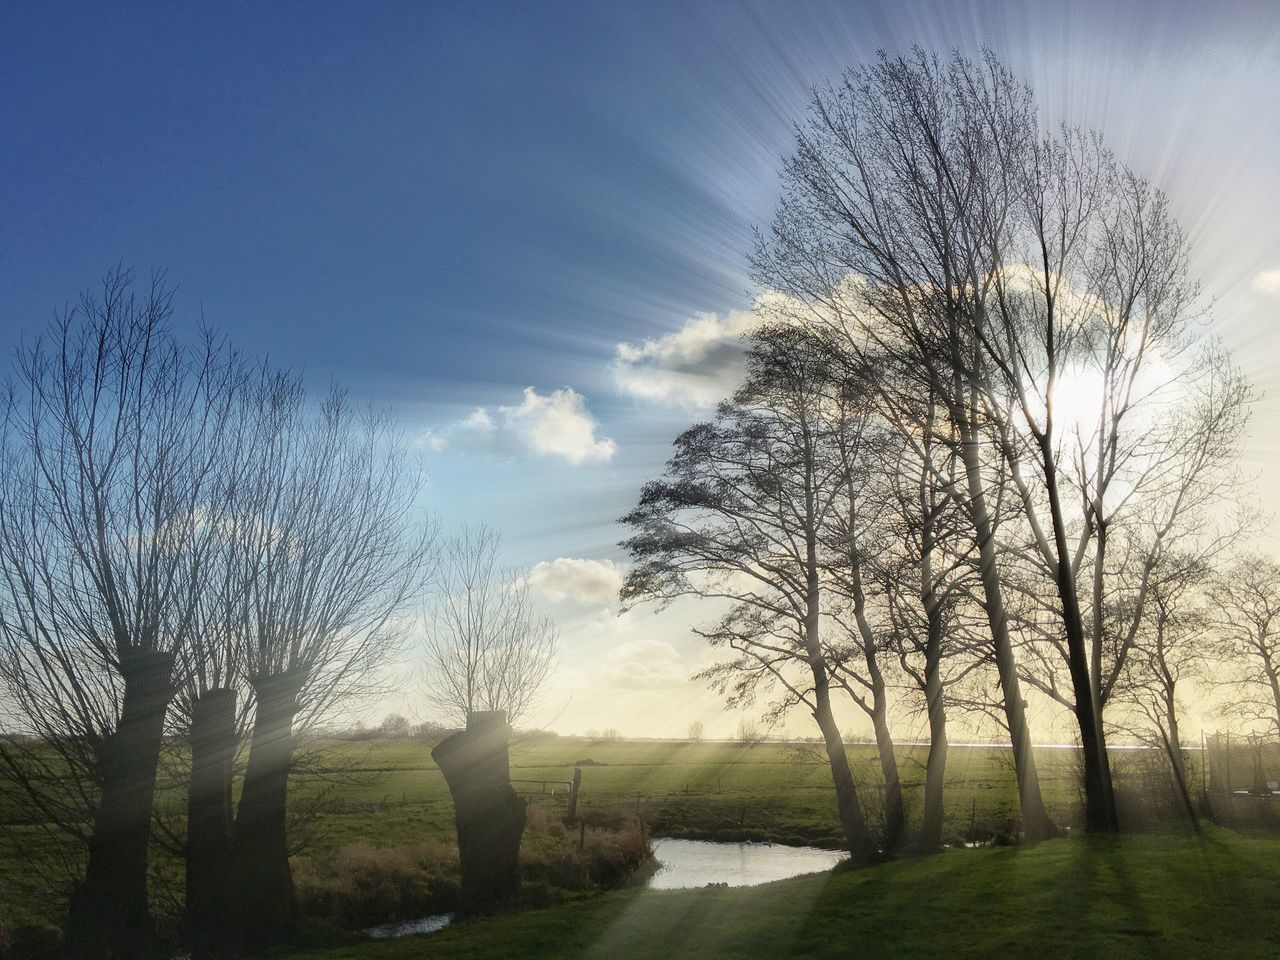 tree, bare tree, nature, sky, tranquility, grass, beauty in nature, tranquil scene, scenics, outdoors, no people, cloud - sky, day, growth, branch, water